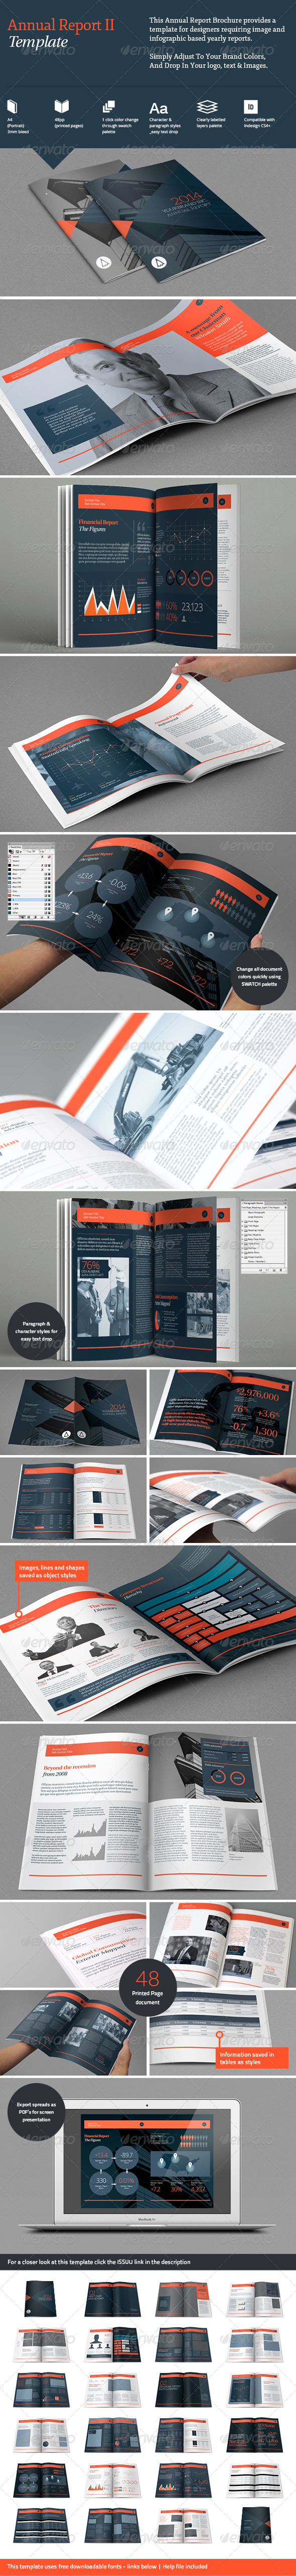 Annual Report II - Informational Brochures